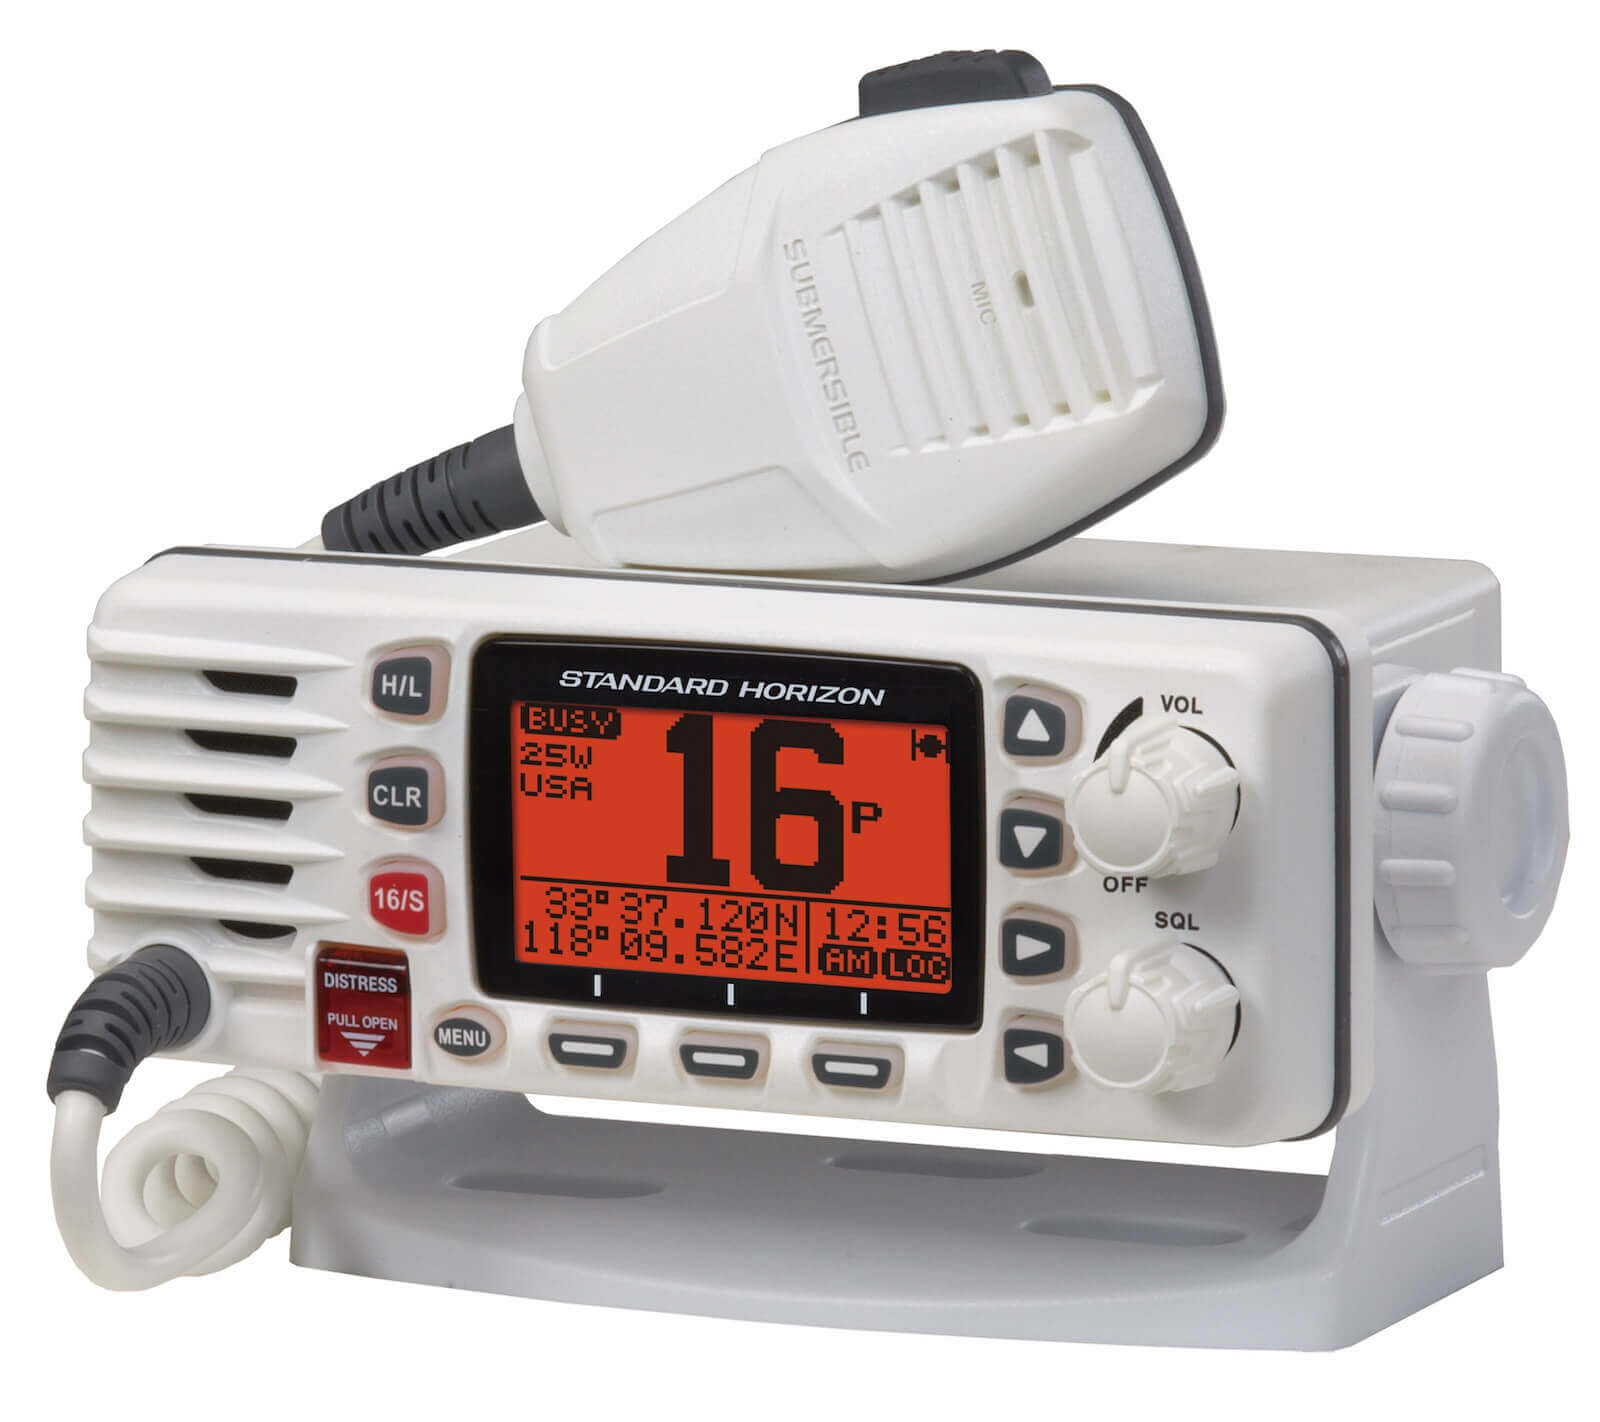 Standard Horizon GX 1300W VHF marine radio review